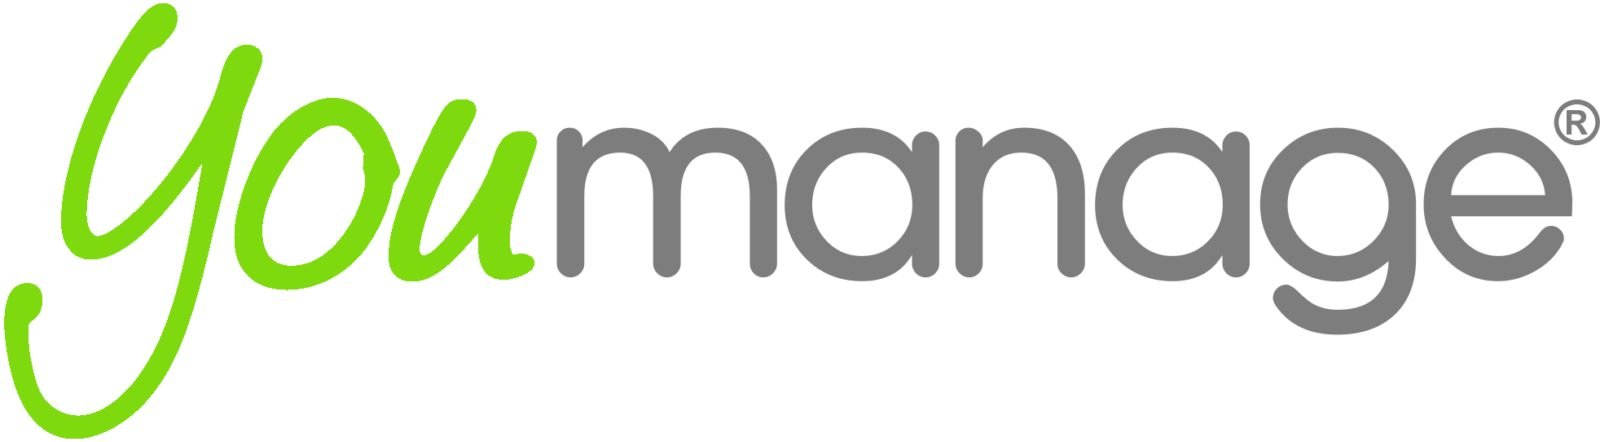 Youmanage-Logo